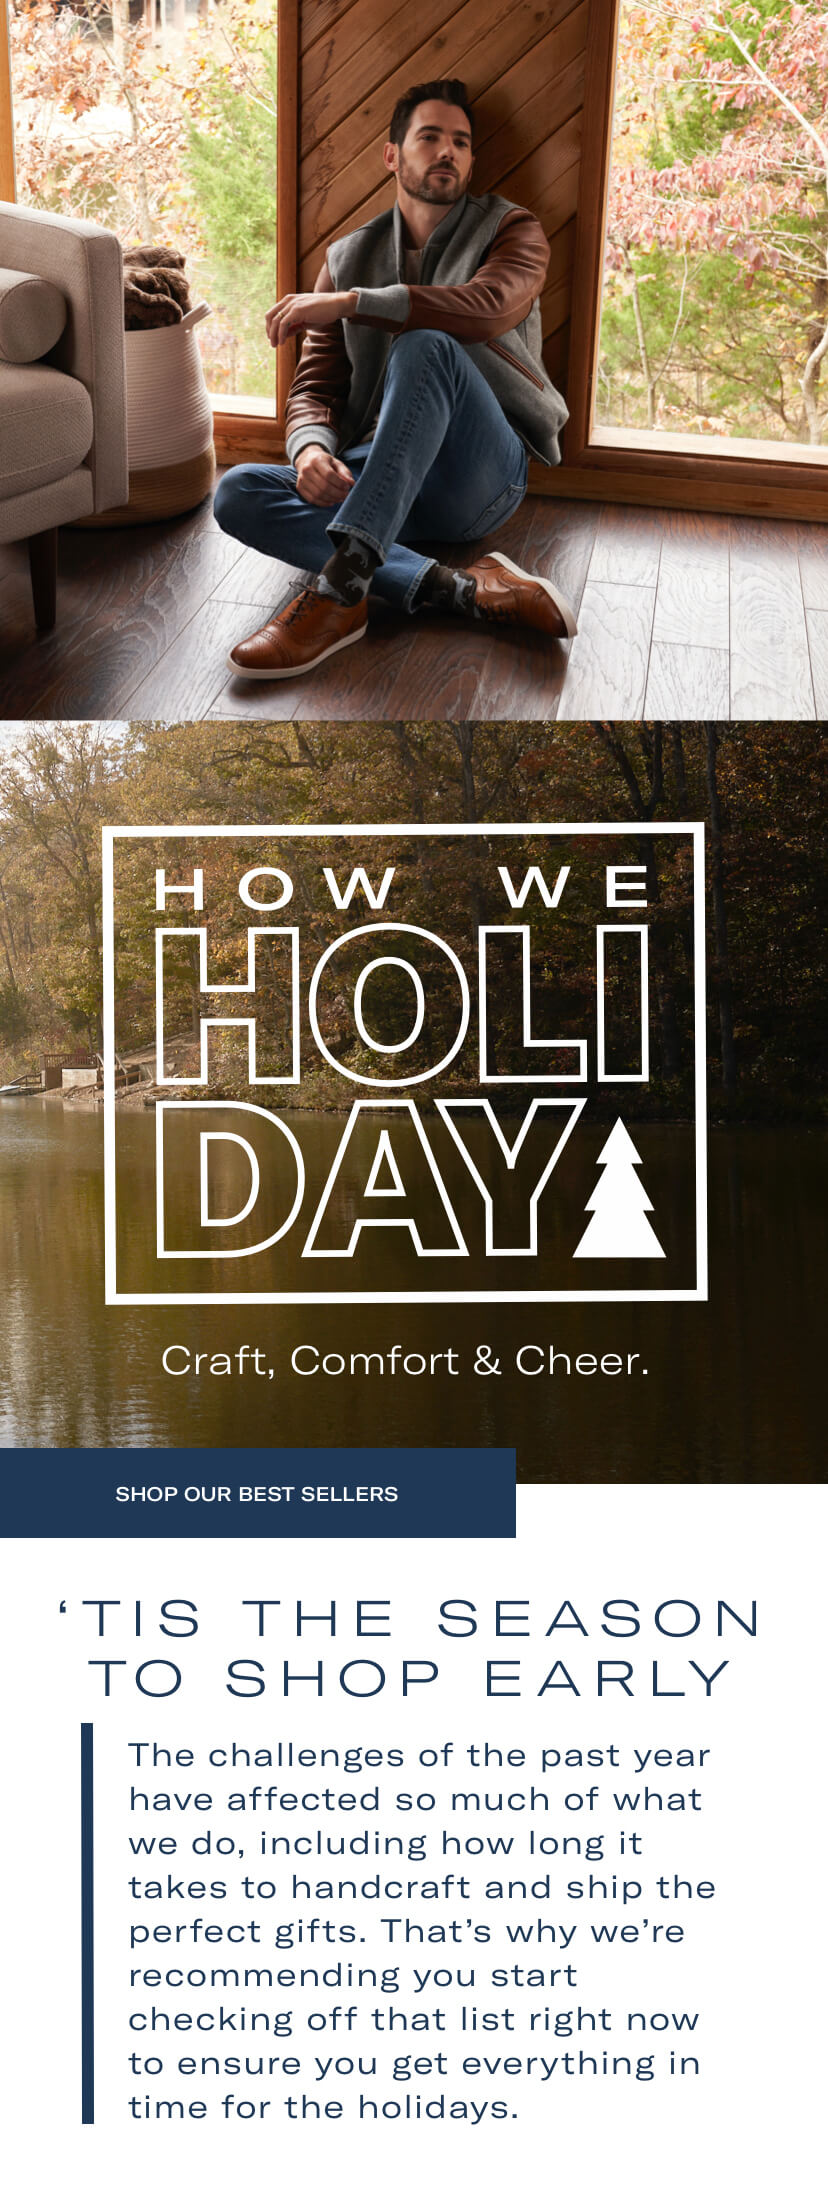 How we Holiday - Craft, comfort and cheer. Tis the season to shop early. The challenges of the past year have affected so much of what we do, including how long it takes to handcraft and ship the perfect gifts. That's why we're recommending you start checking off that list right now to ensure you get everything in time for the holidays.